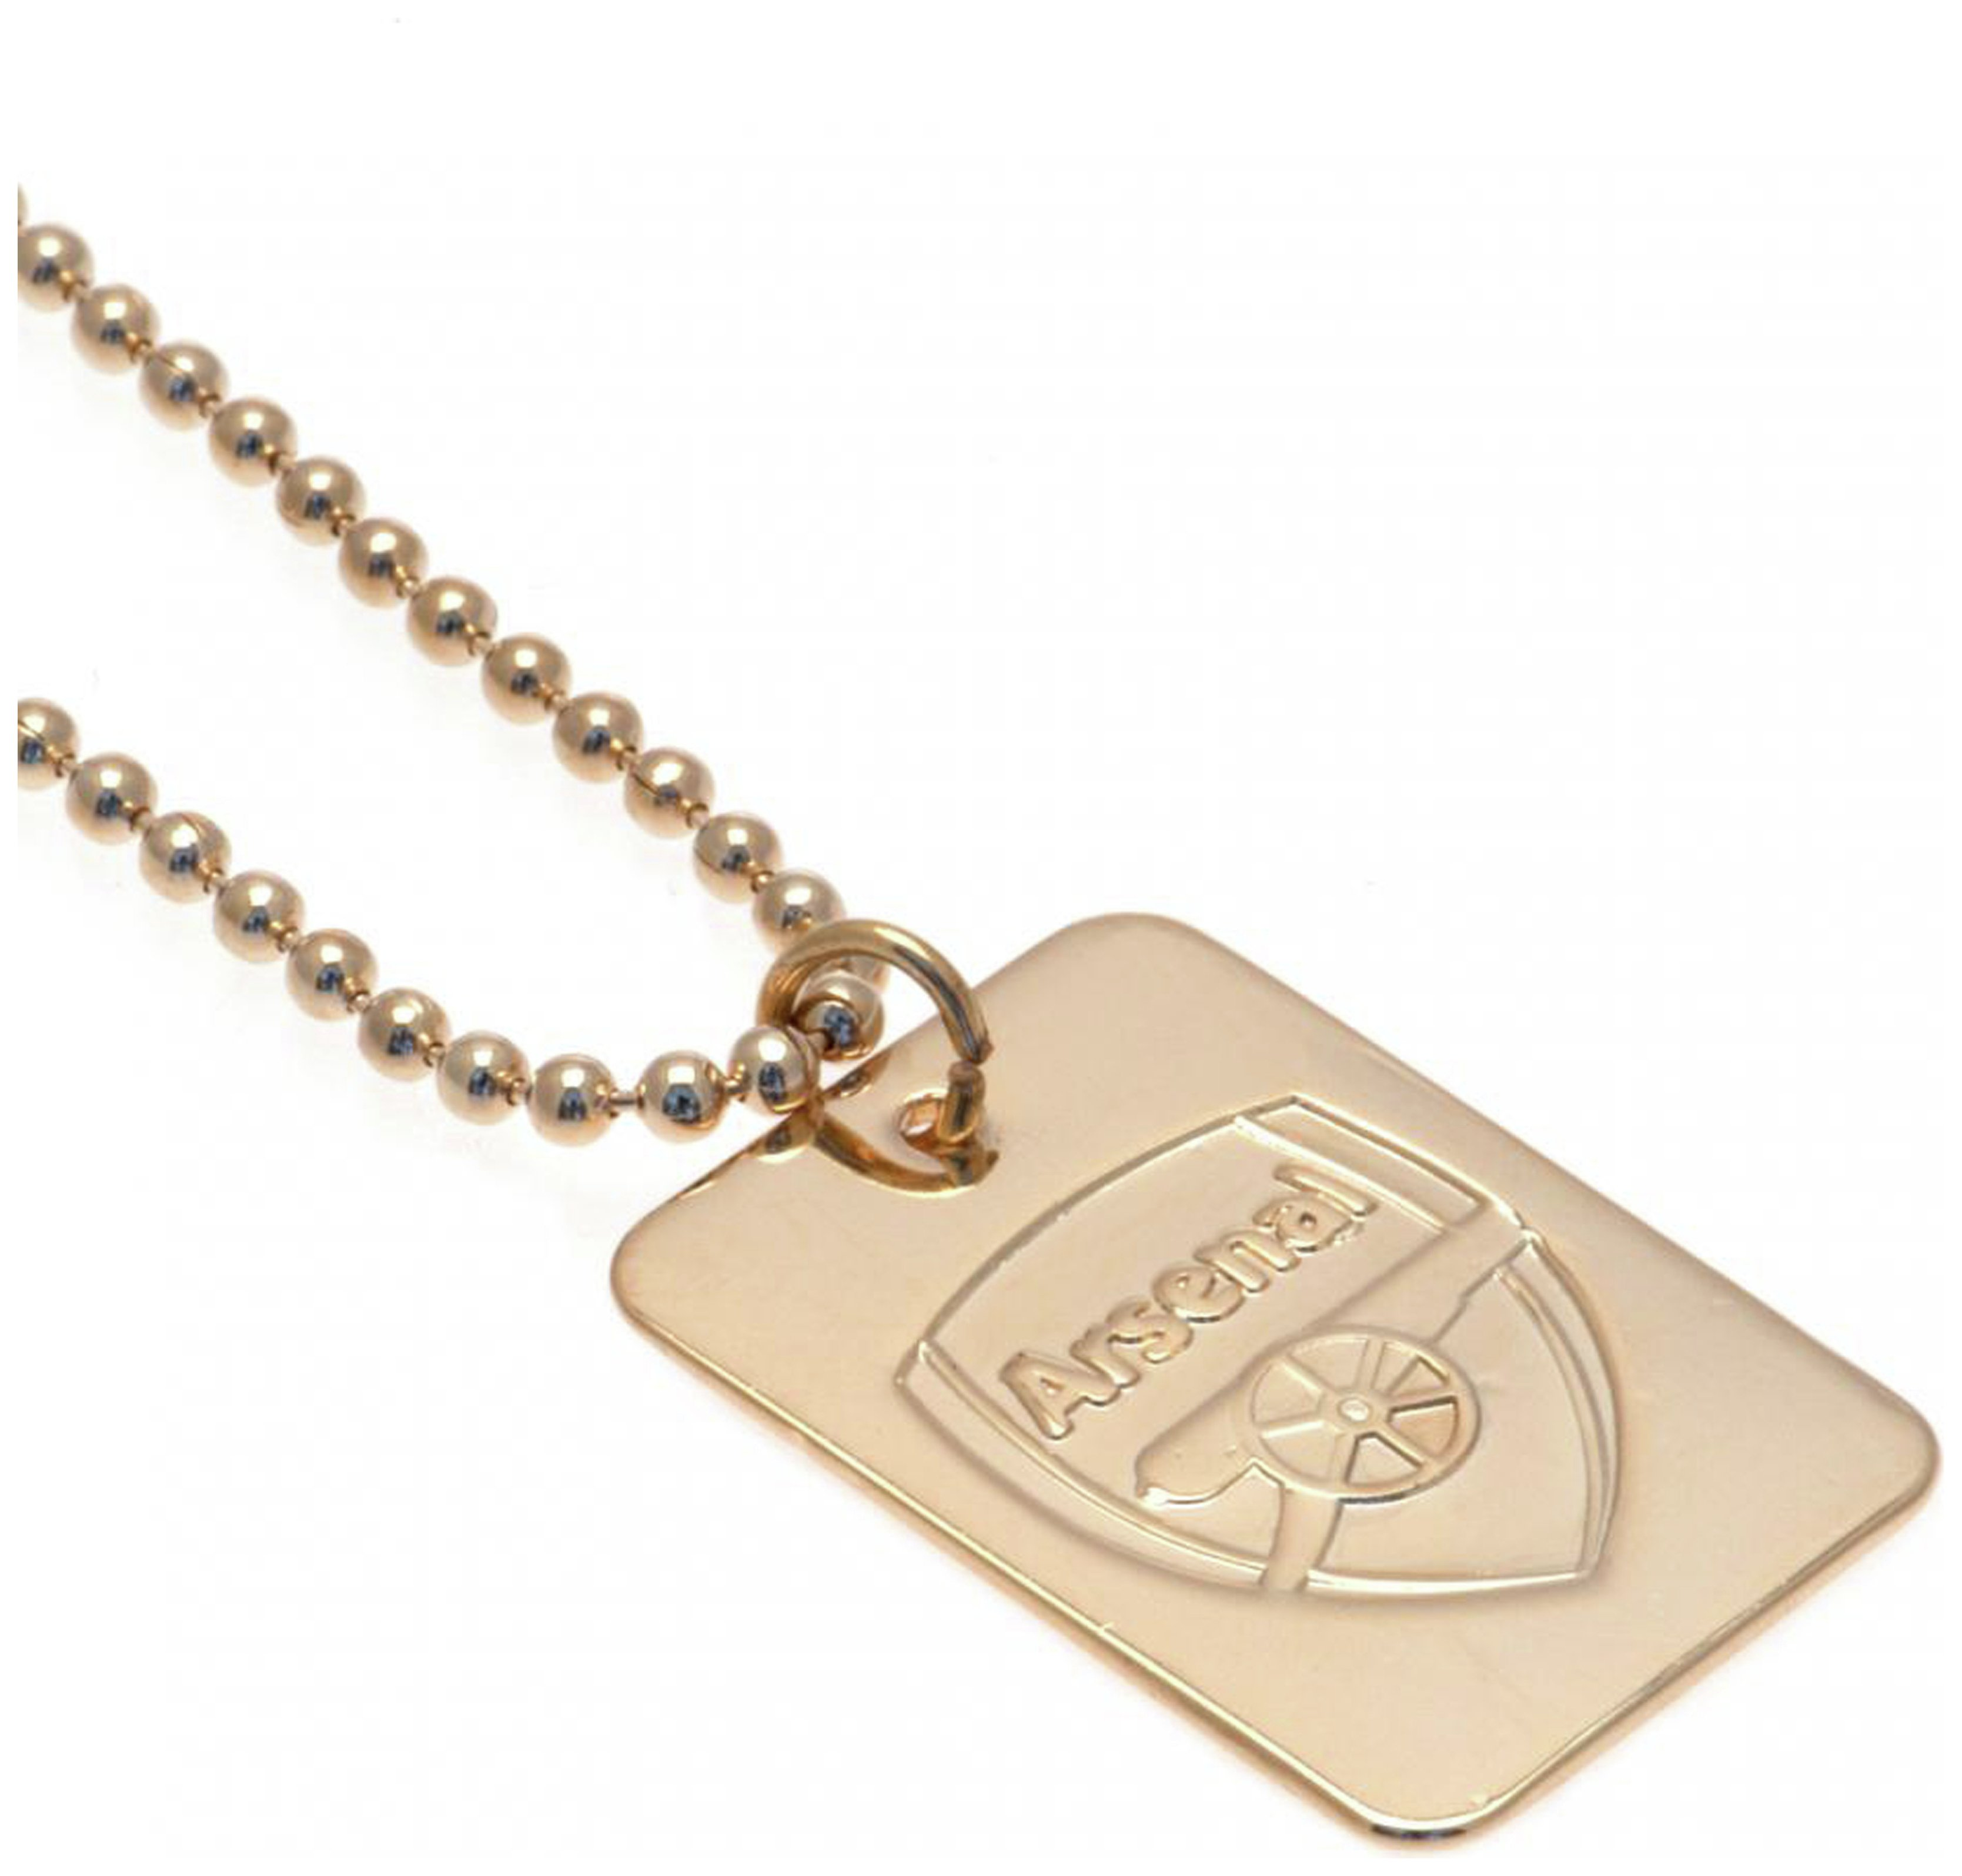 Image of Gold Plated Arsenal Dog Tag & Ball Chain.